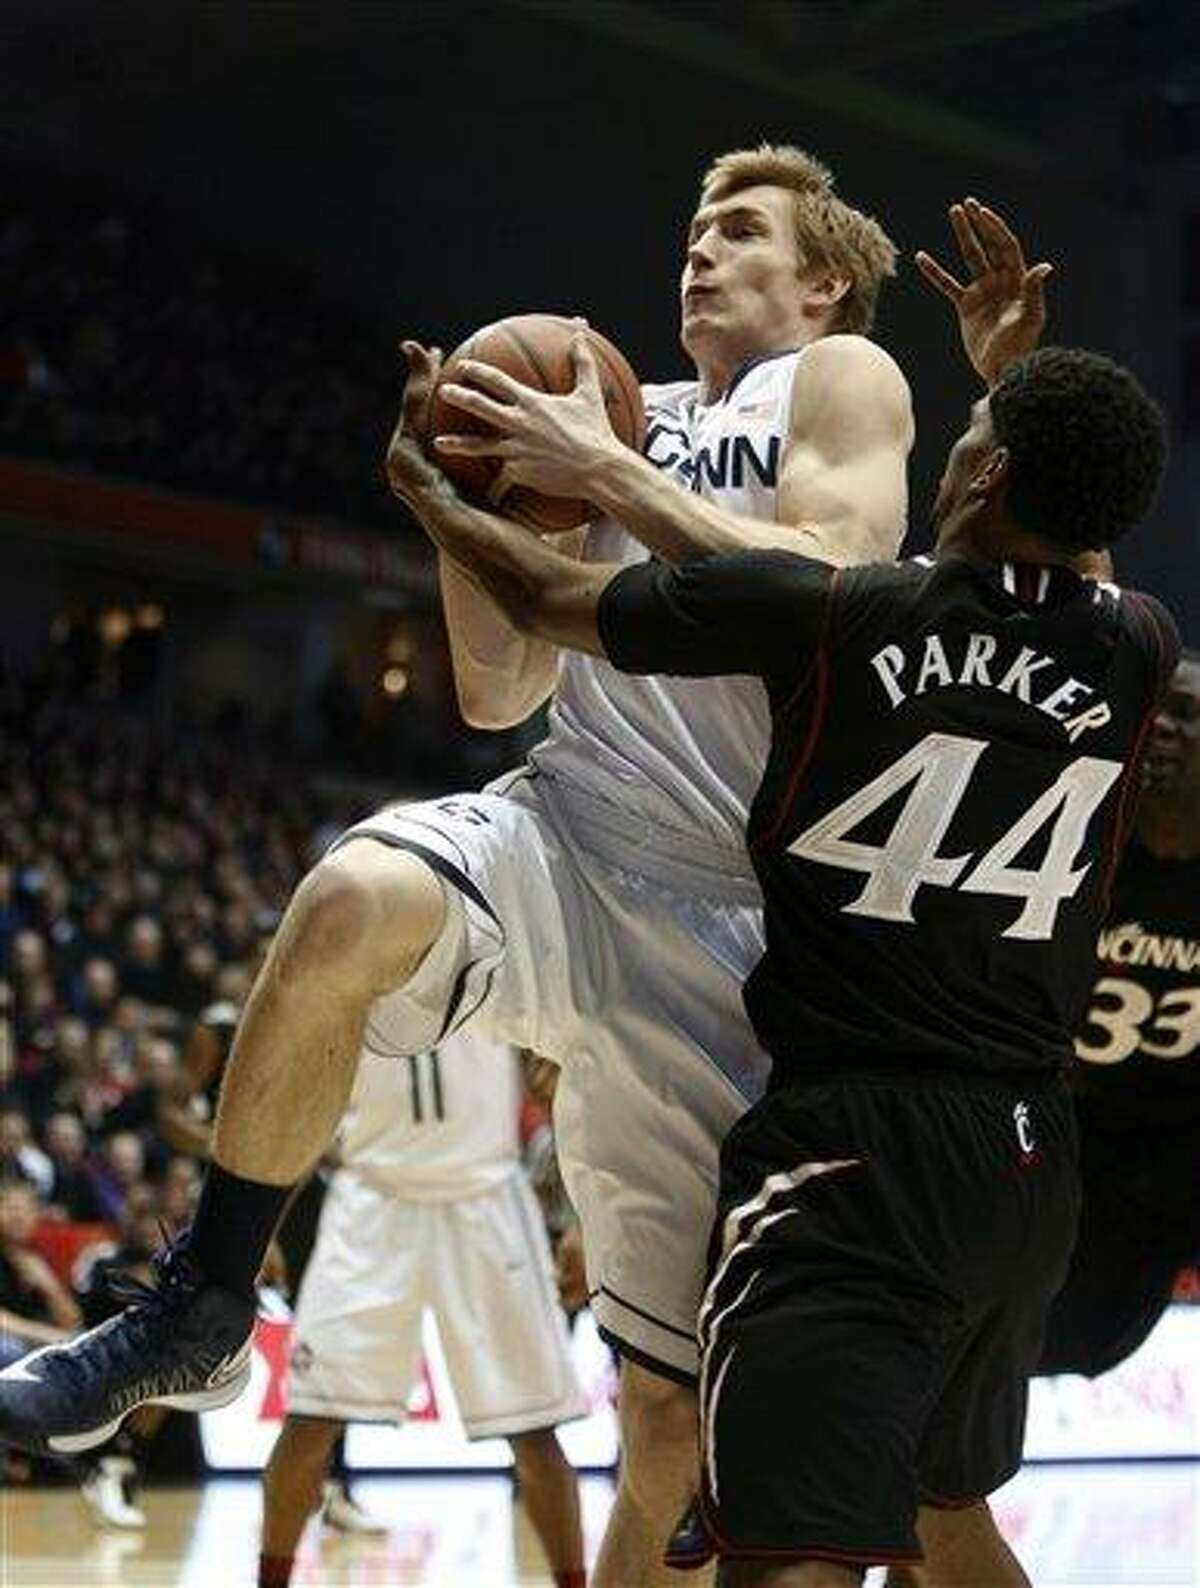 Connecticut forward Niels Giffey, left, comes down with a rebound against Cincinnati guard JaQuon Parker, right, during the first half of an NCAA college basketball game, Saturday, March 2, 2013, in Cincinnati. (AP Photo/David Kohl)